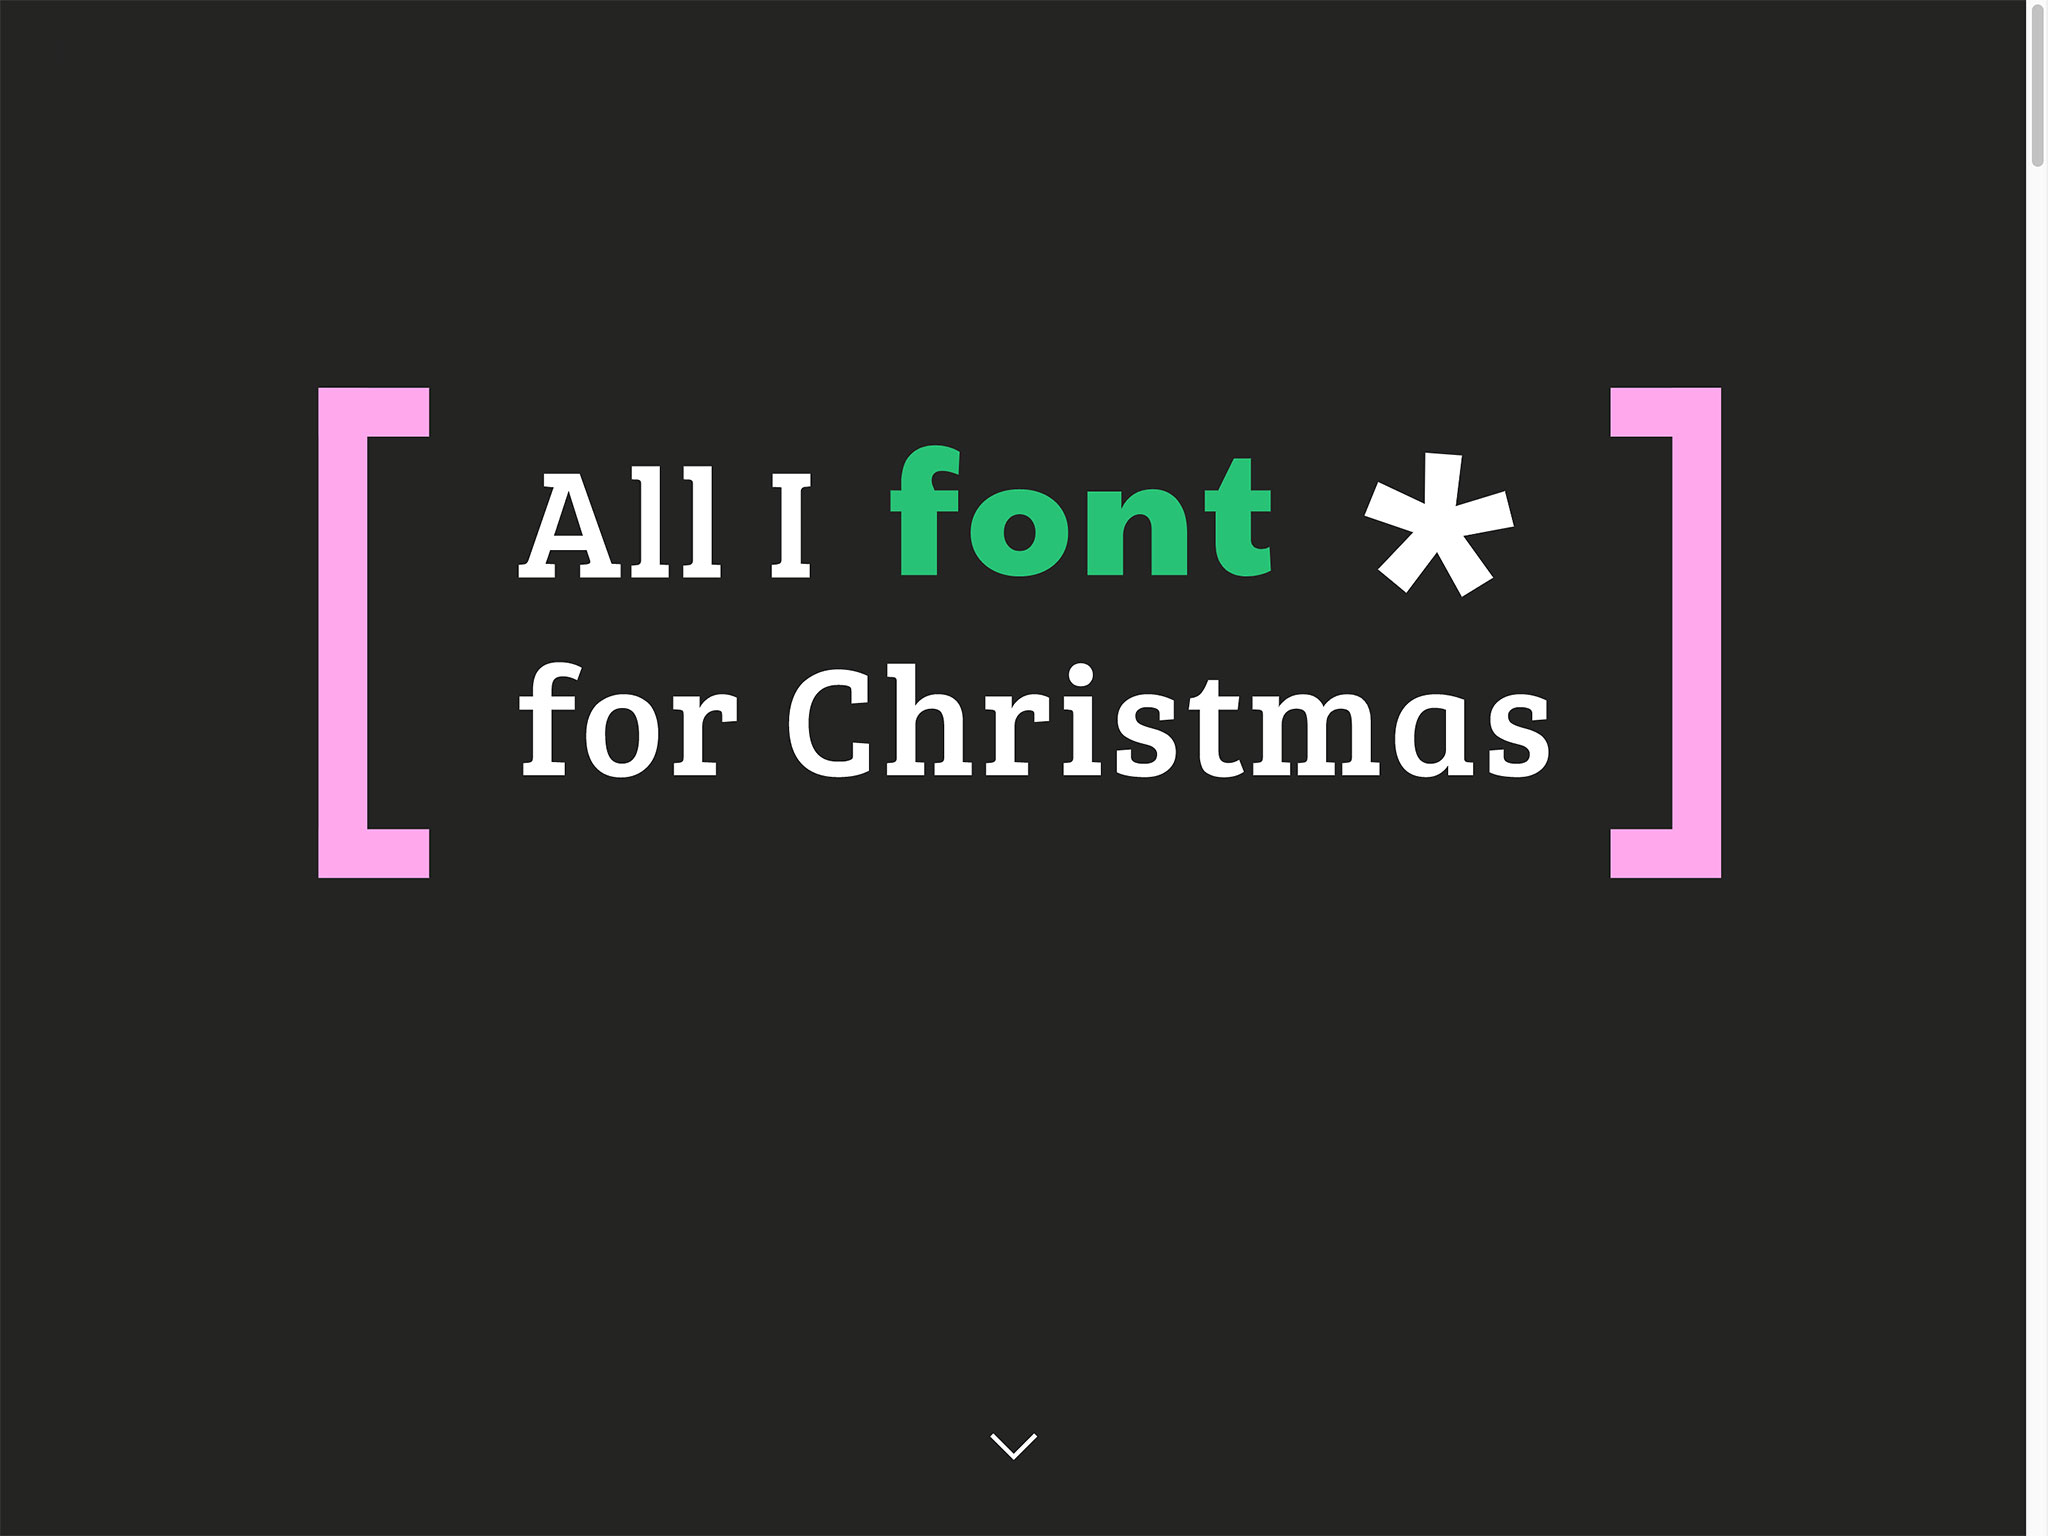 All I Font for Christmas